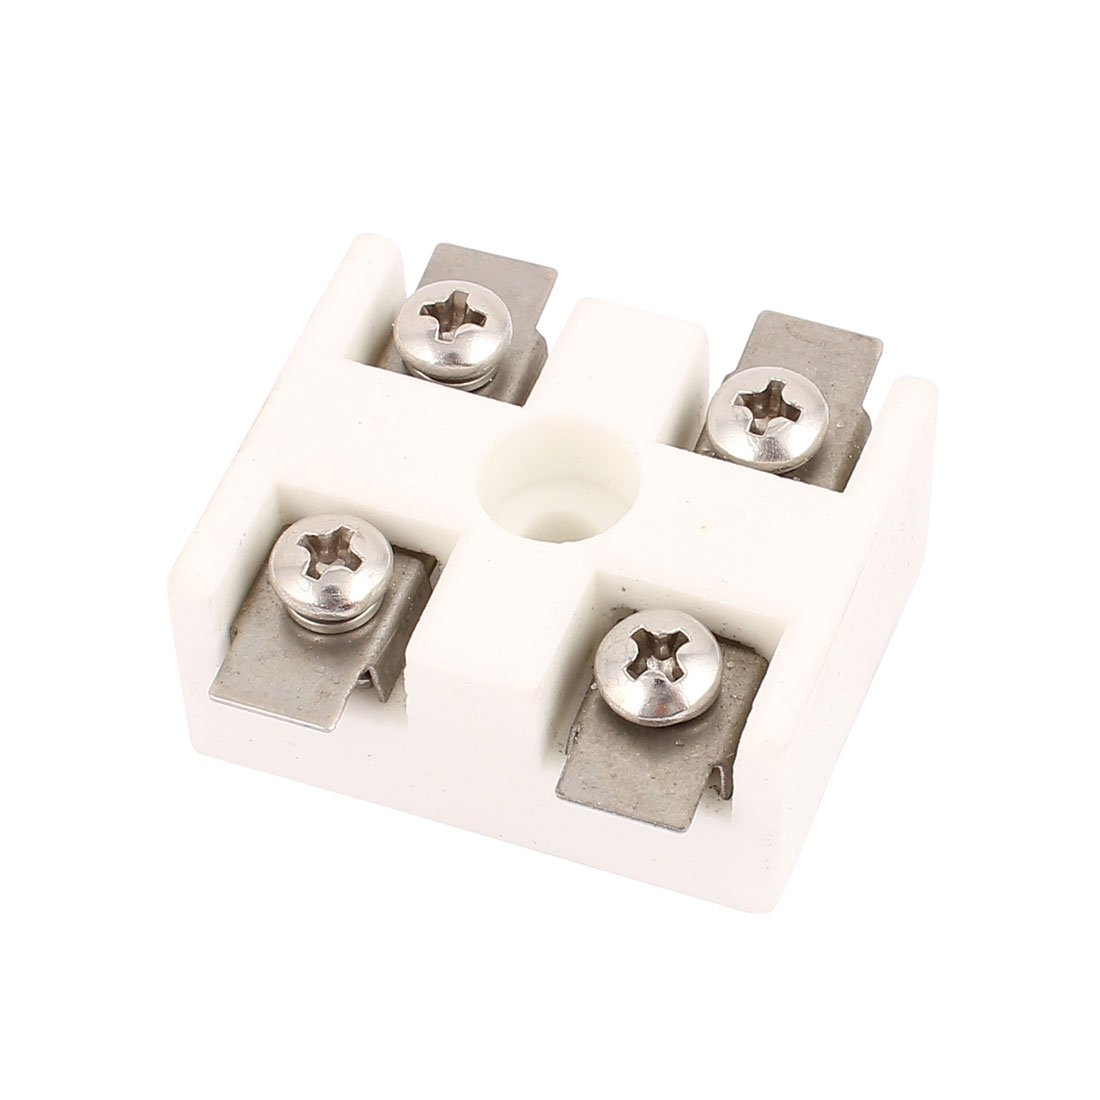 uxcell 30A 2 Way 5 Hole 2W5H High Temperature Ceramic Terminal Block Wire Connector